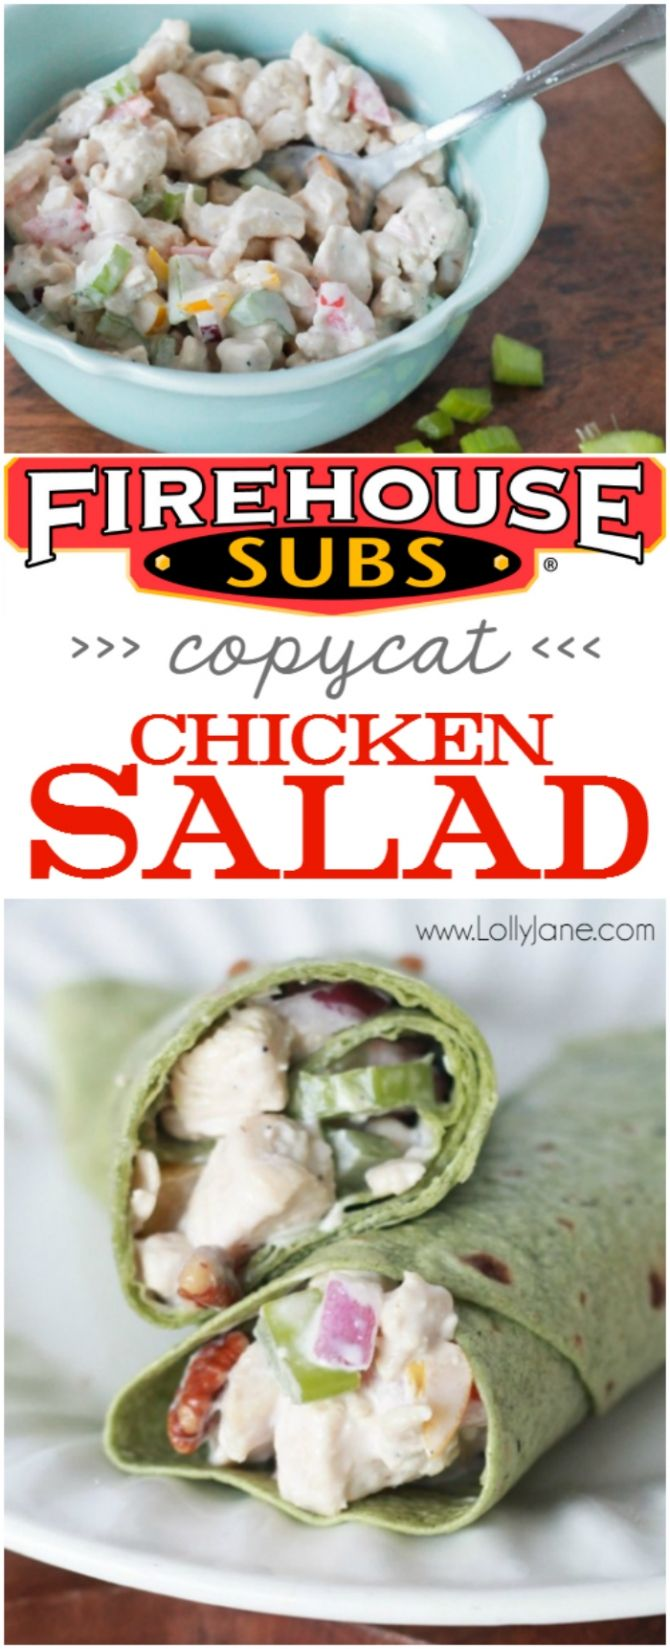 Firehouse Subs Copycat Chicken Salad, better than Mom used to make! Full of protein, veggies and low calories! #SCNRF #Pmedia #ad